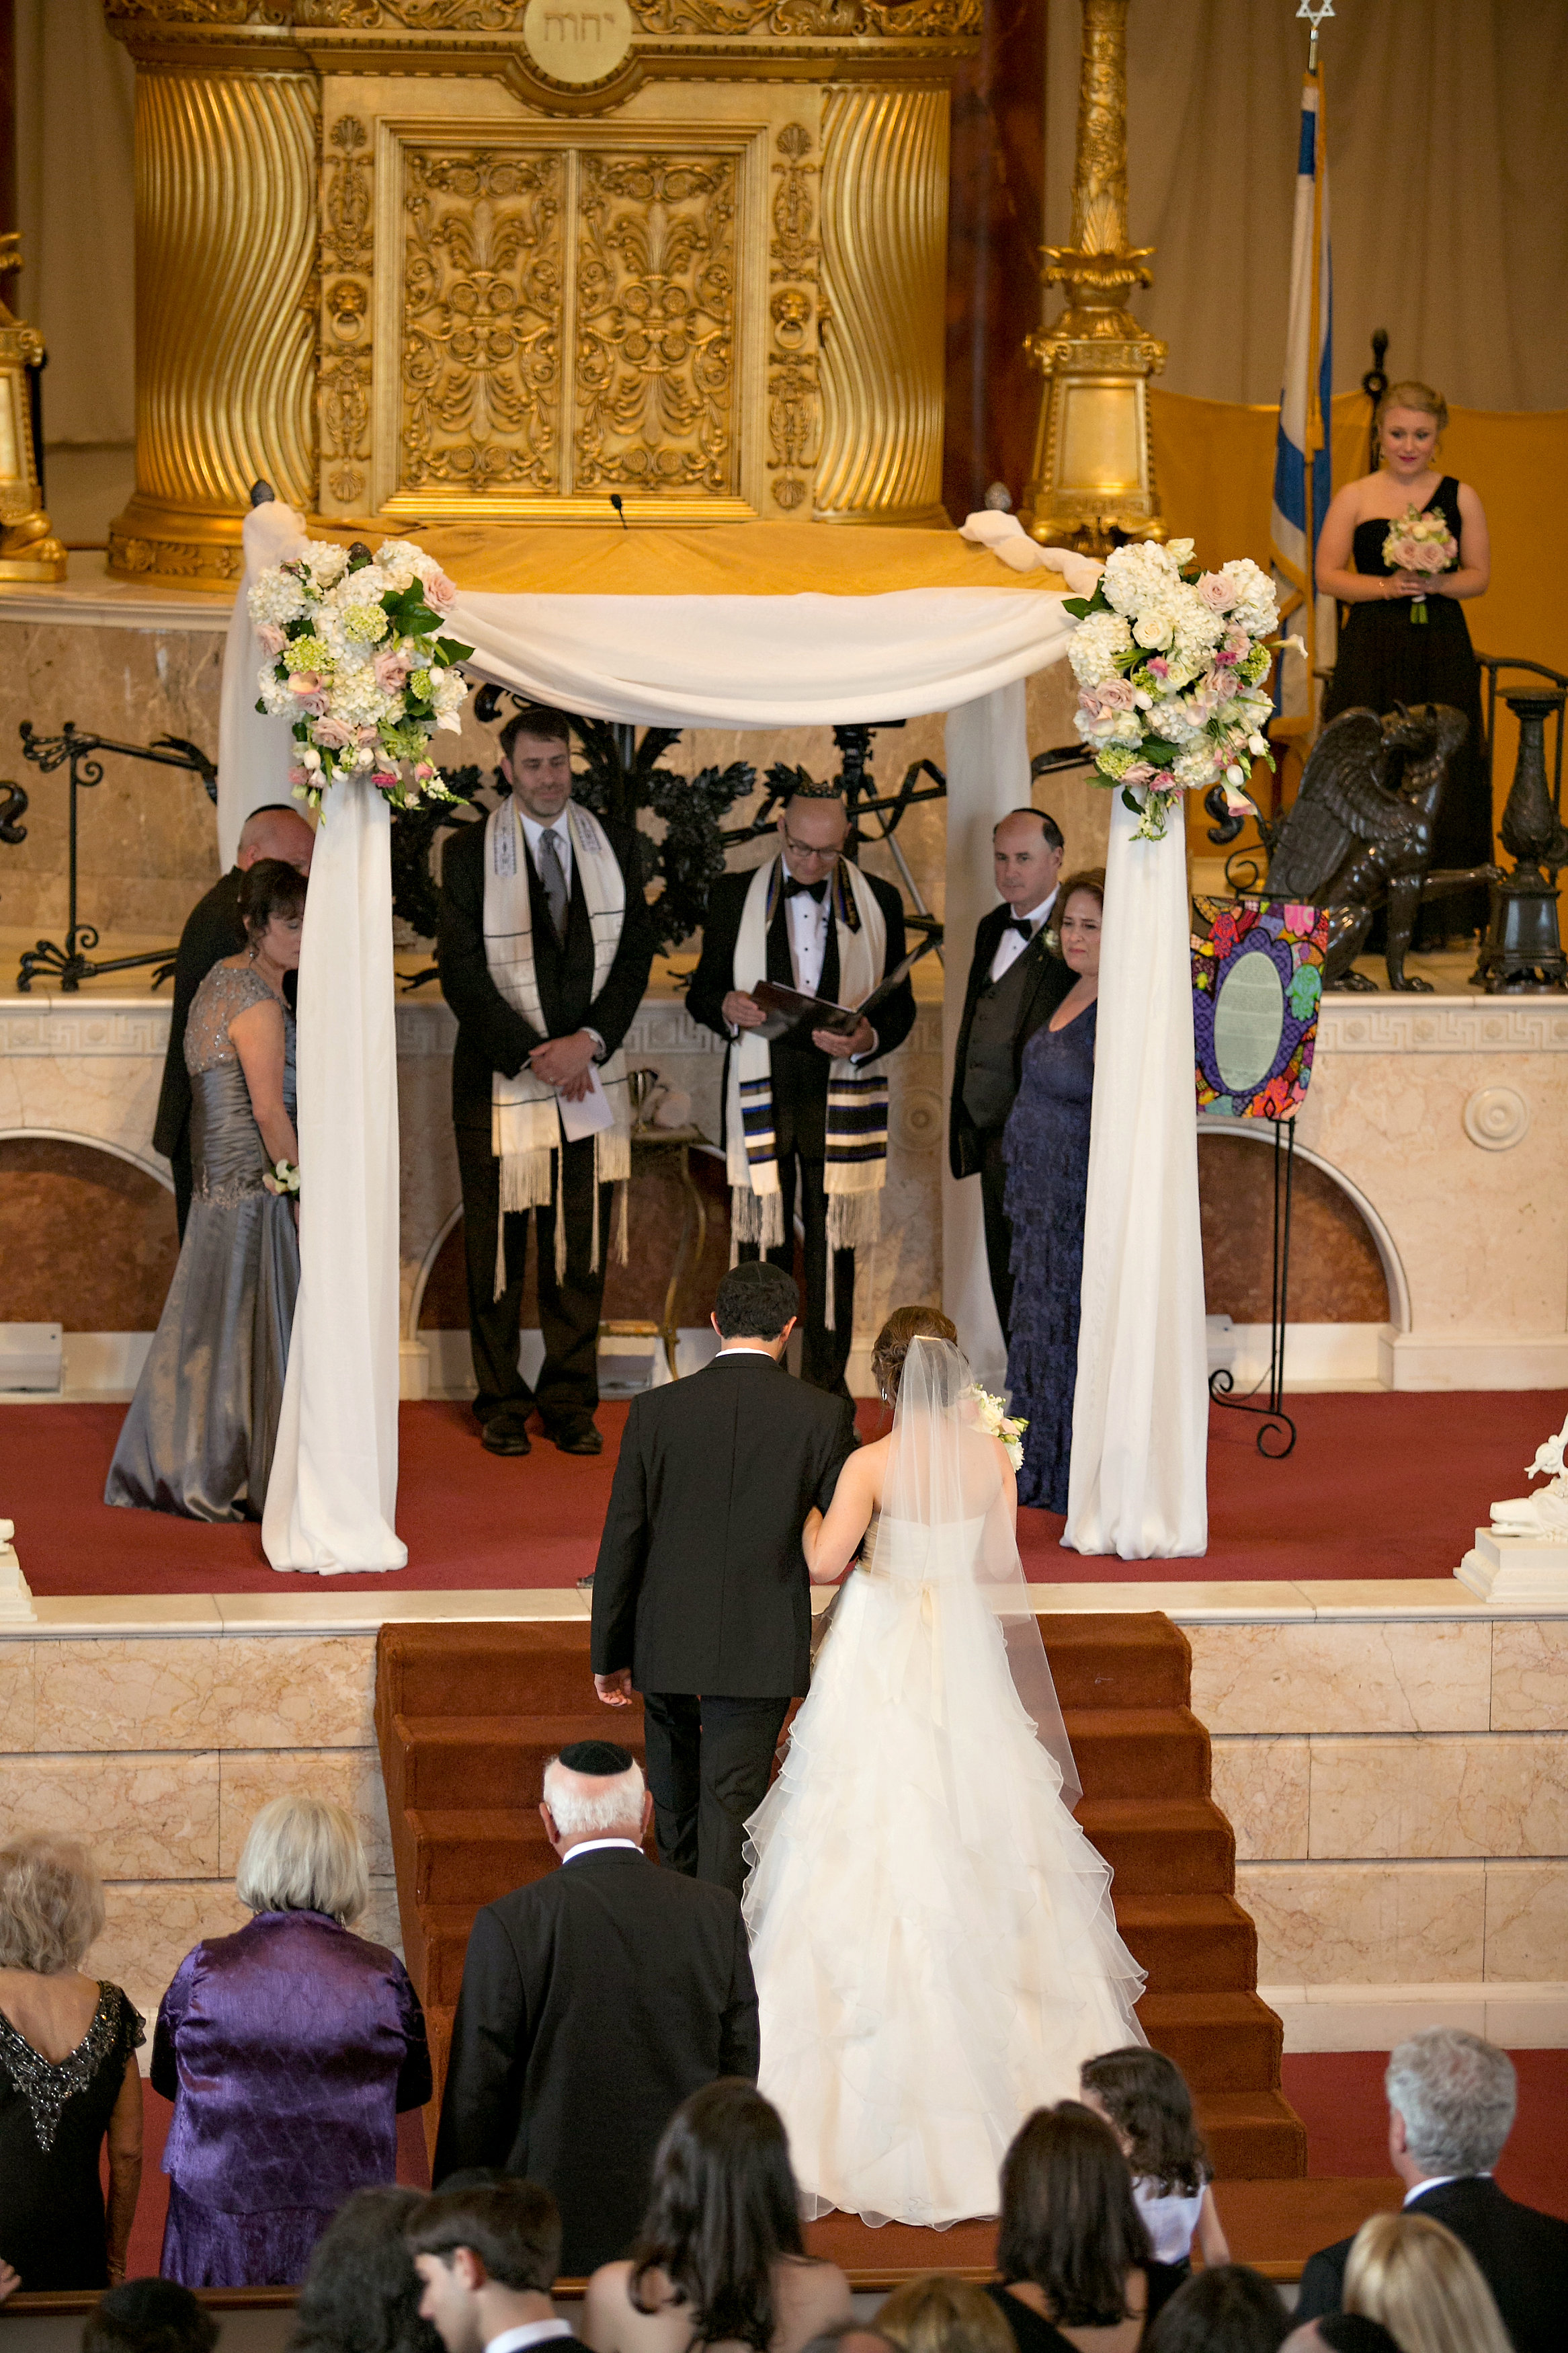 Bridal Entrance At Jewish Wedding The Temple In Midtown Atlanta With Traditional Chuppah